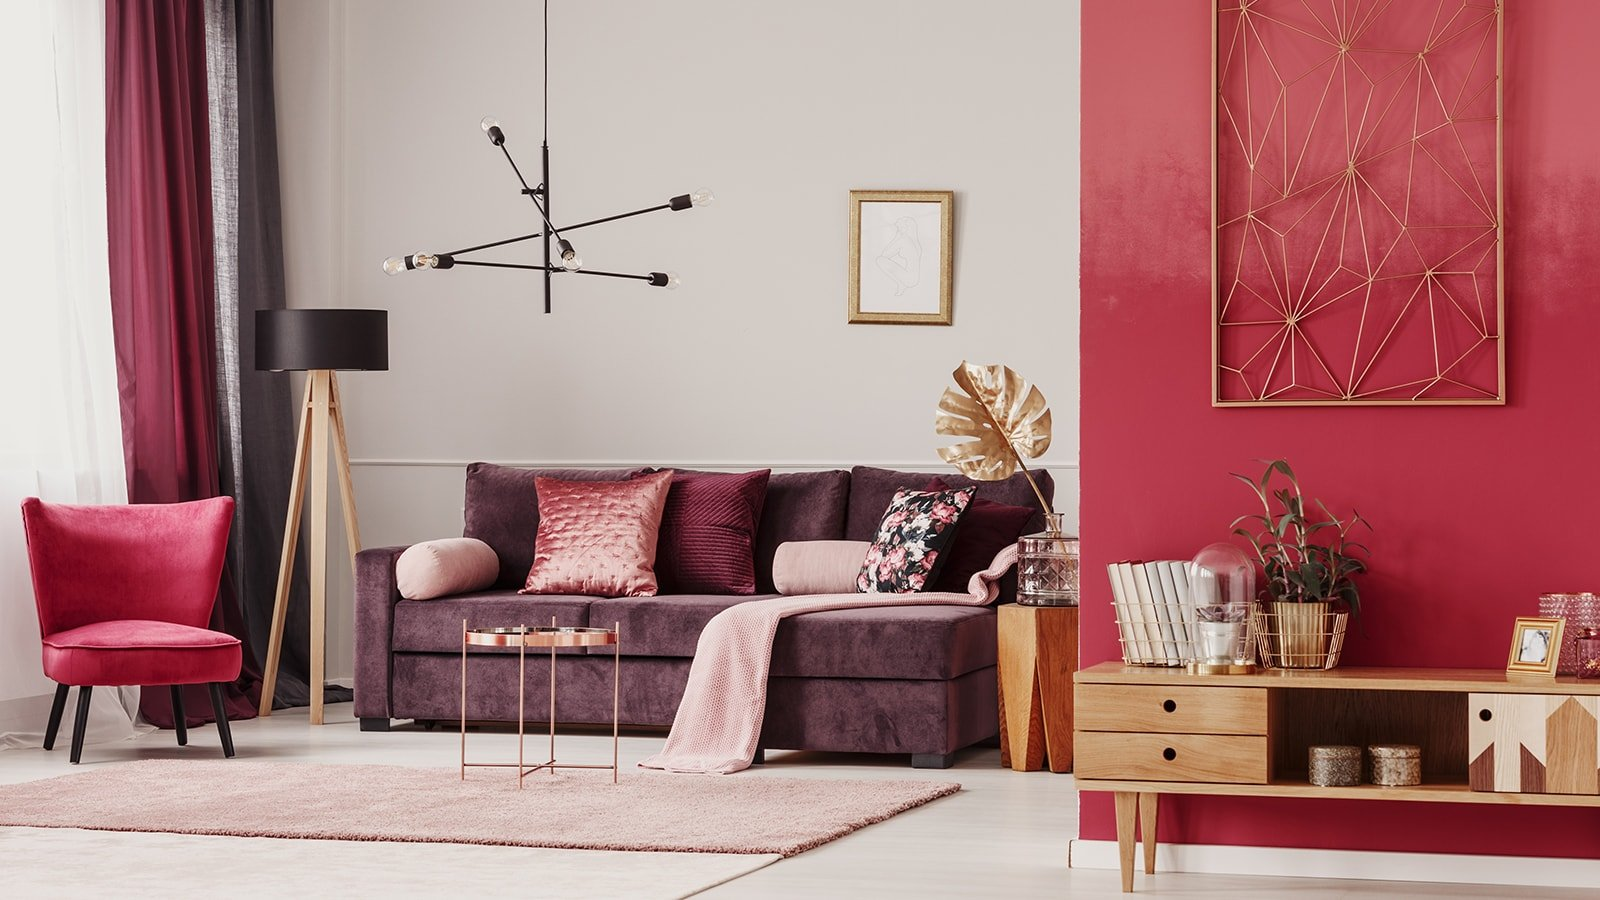 Living room with red walls